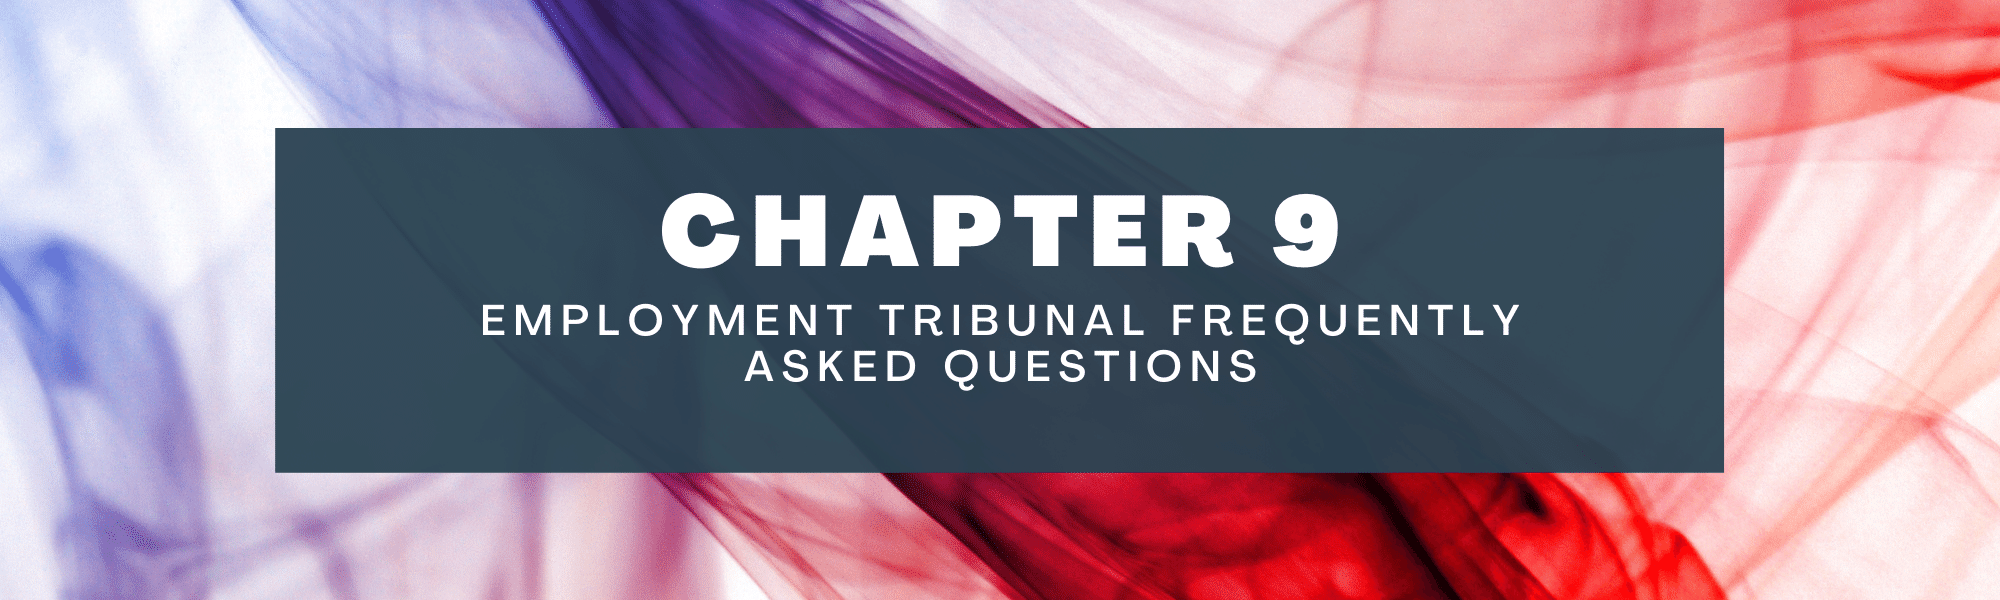 employment tribunal process frequently asked questions